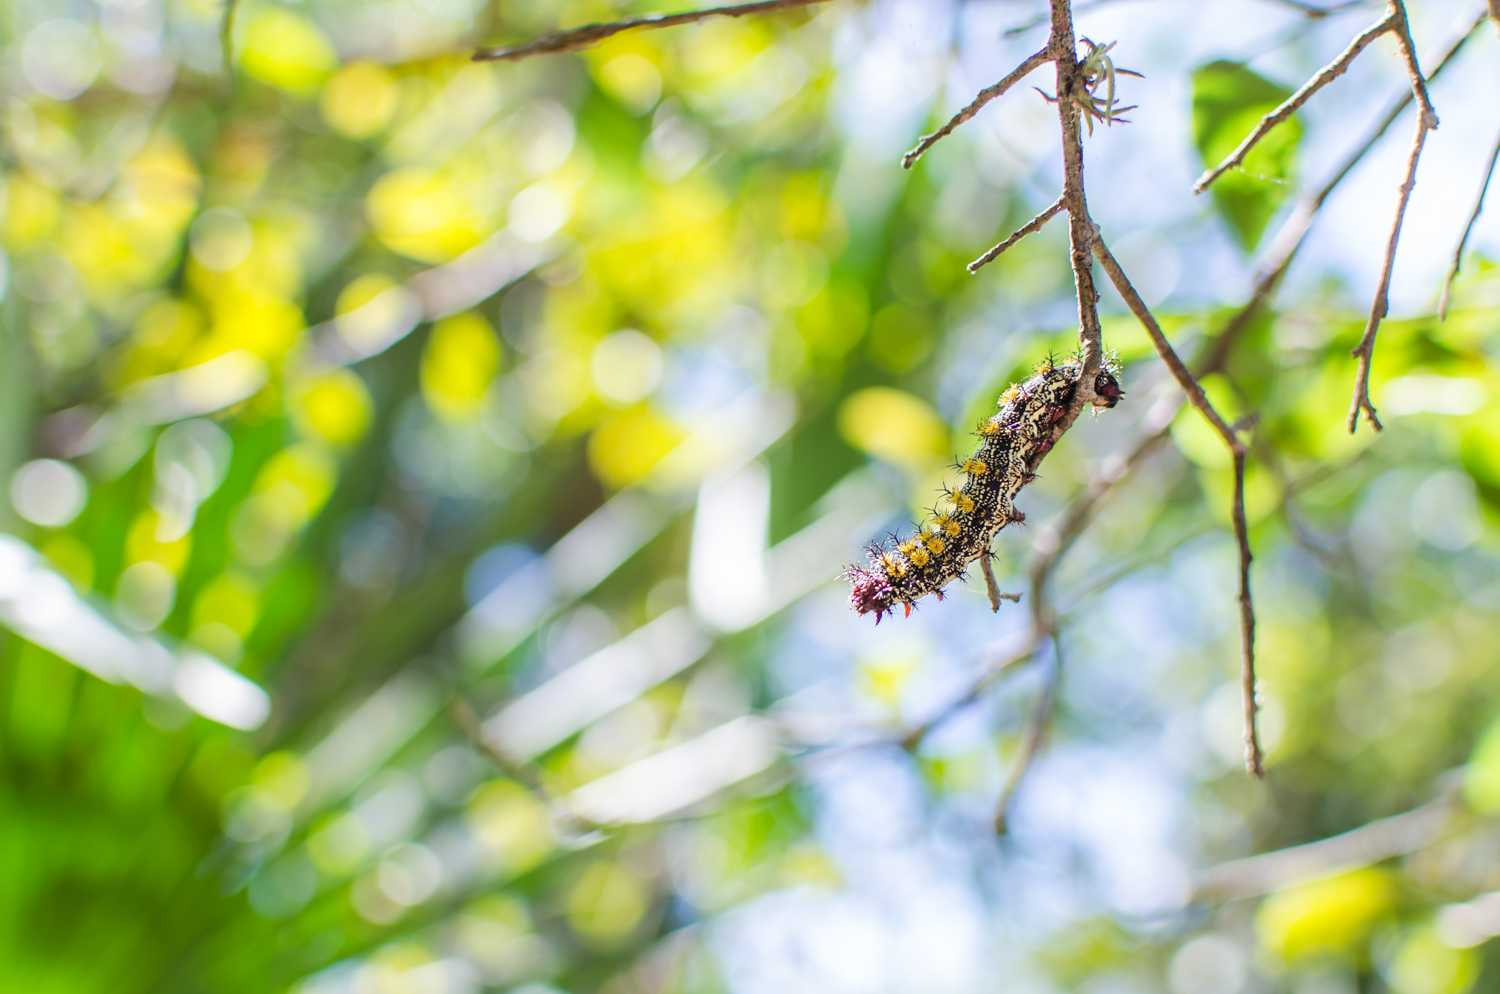 A caterpillar hanging of one of the trees in the canopied area of the Tortuga Nature Trail on campus.